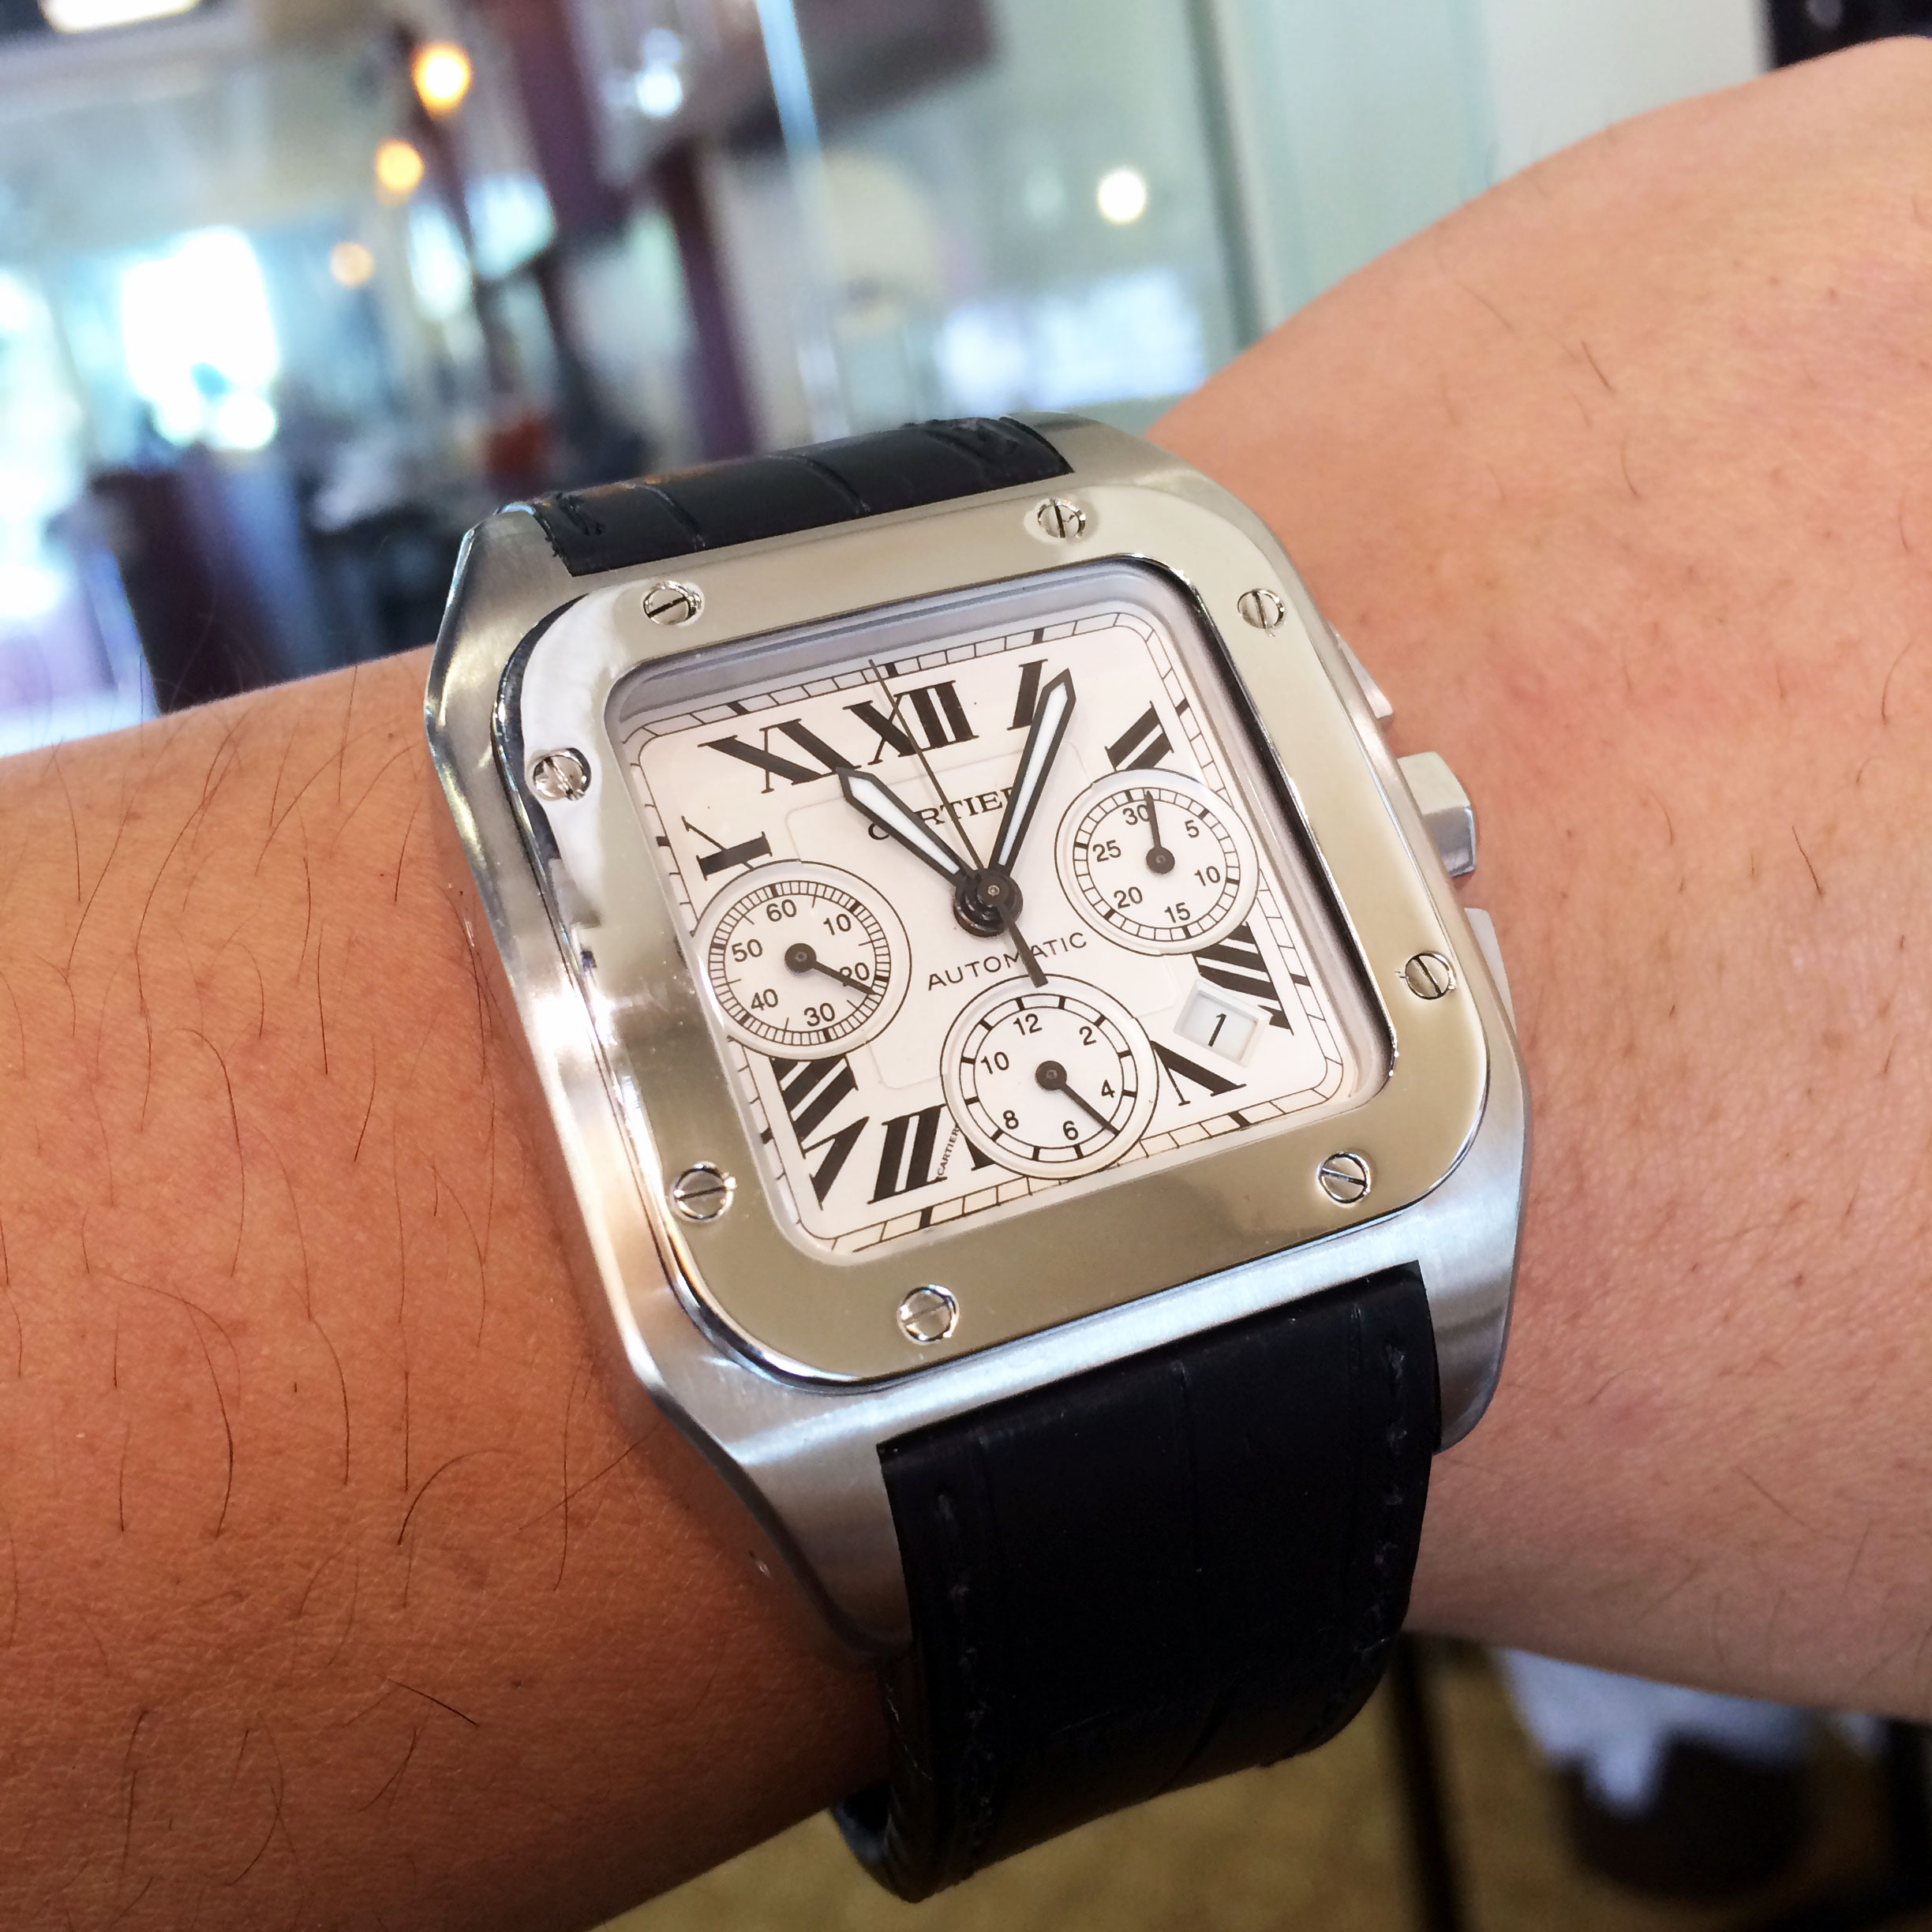 Cartier 2740 Santos 100xl Chronograph Automatic Watch. 18 Karat Gold Bangle Bracelets. Historical Engagement Rings. Elegant Wedding Rings. Jewelry Platinum. Part Watches. Sapphire Rings. Flower Design Rings. Strong Bands